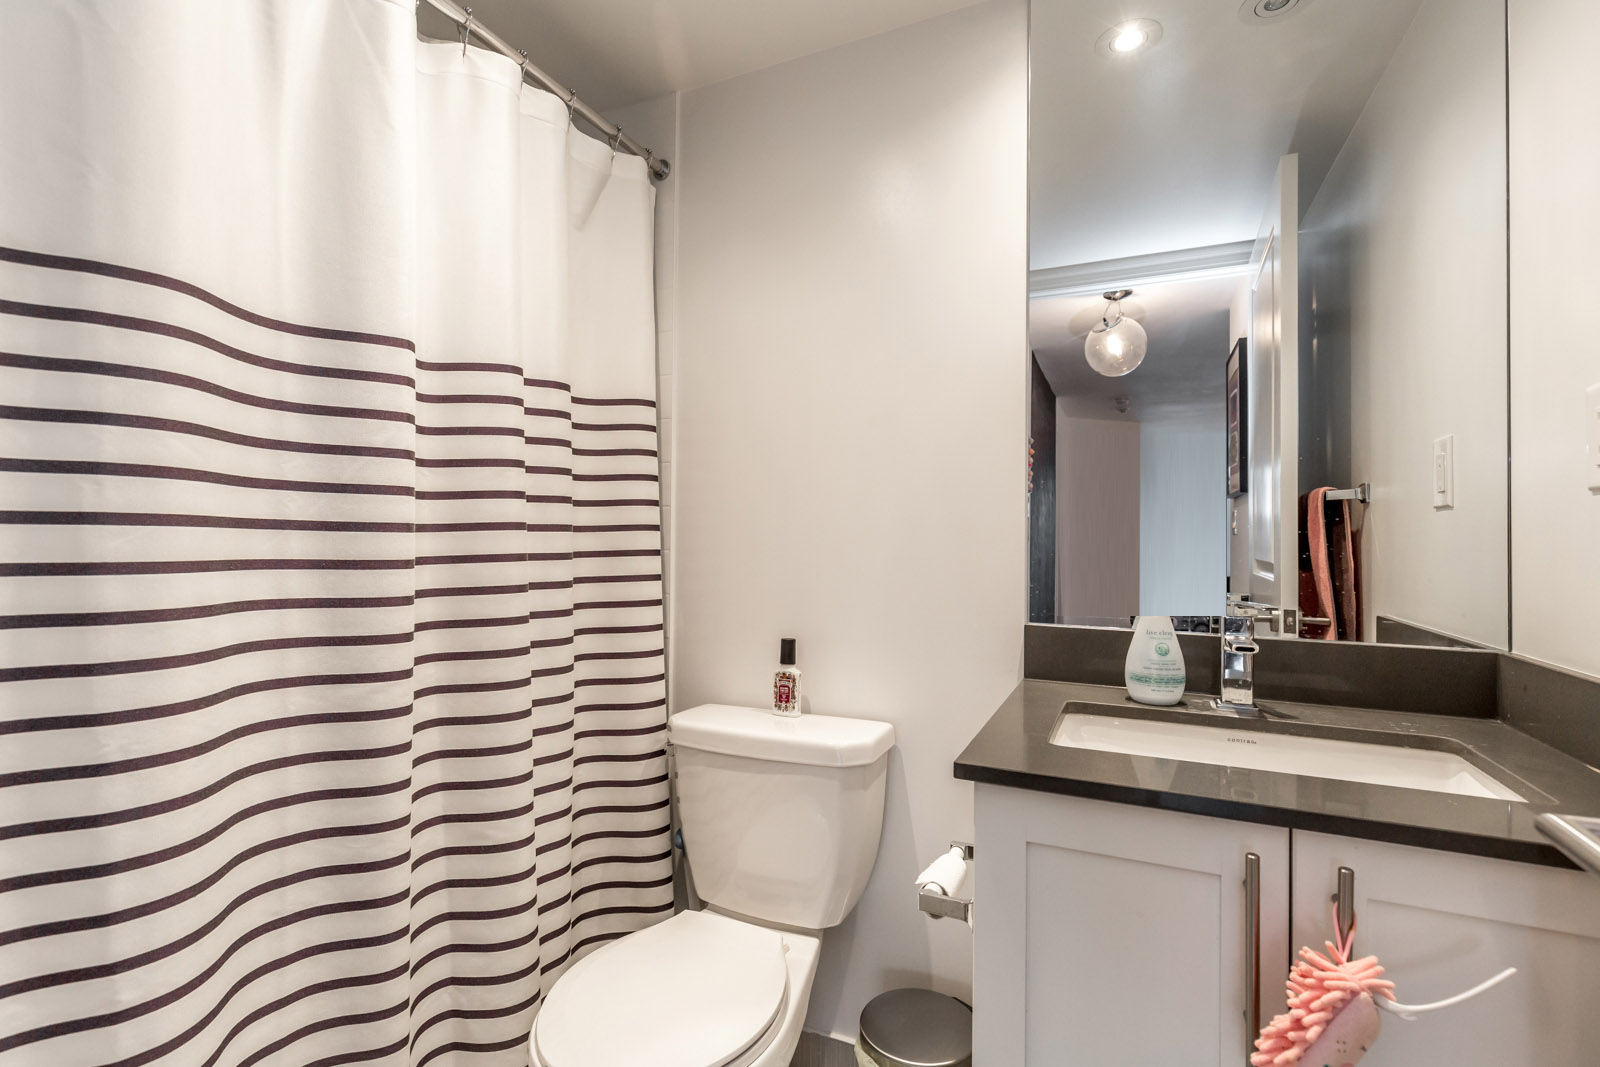 Photo showing a bathroom with crisp lines and clean layout